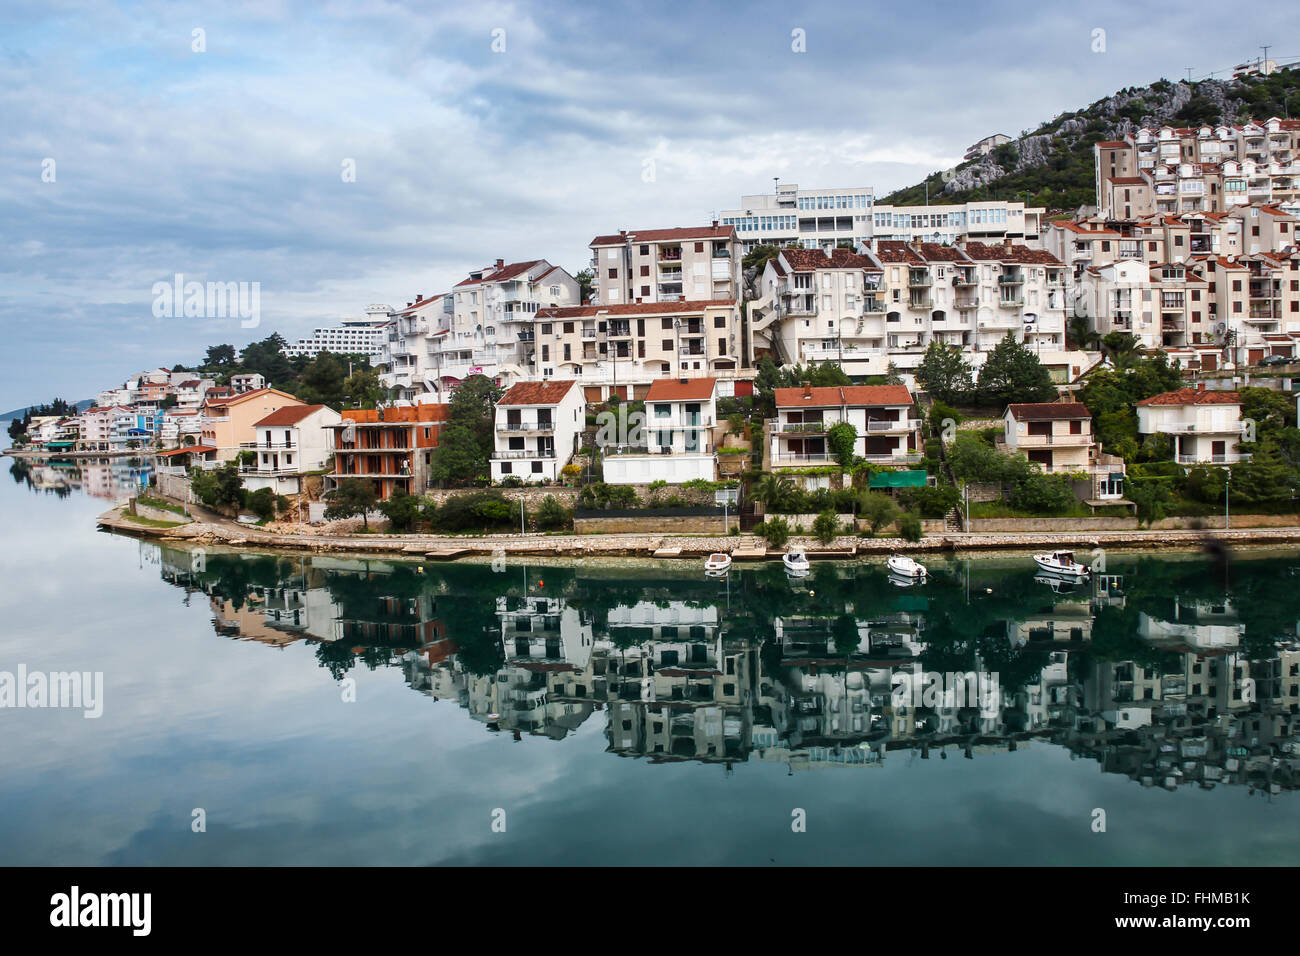 The nice reflection of a small village in Bosnia Herzegovina in the silent morning bay. The village was still sleeping. - Stock Image